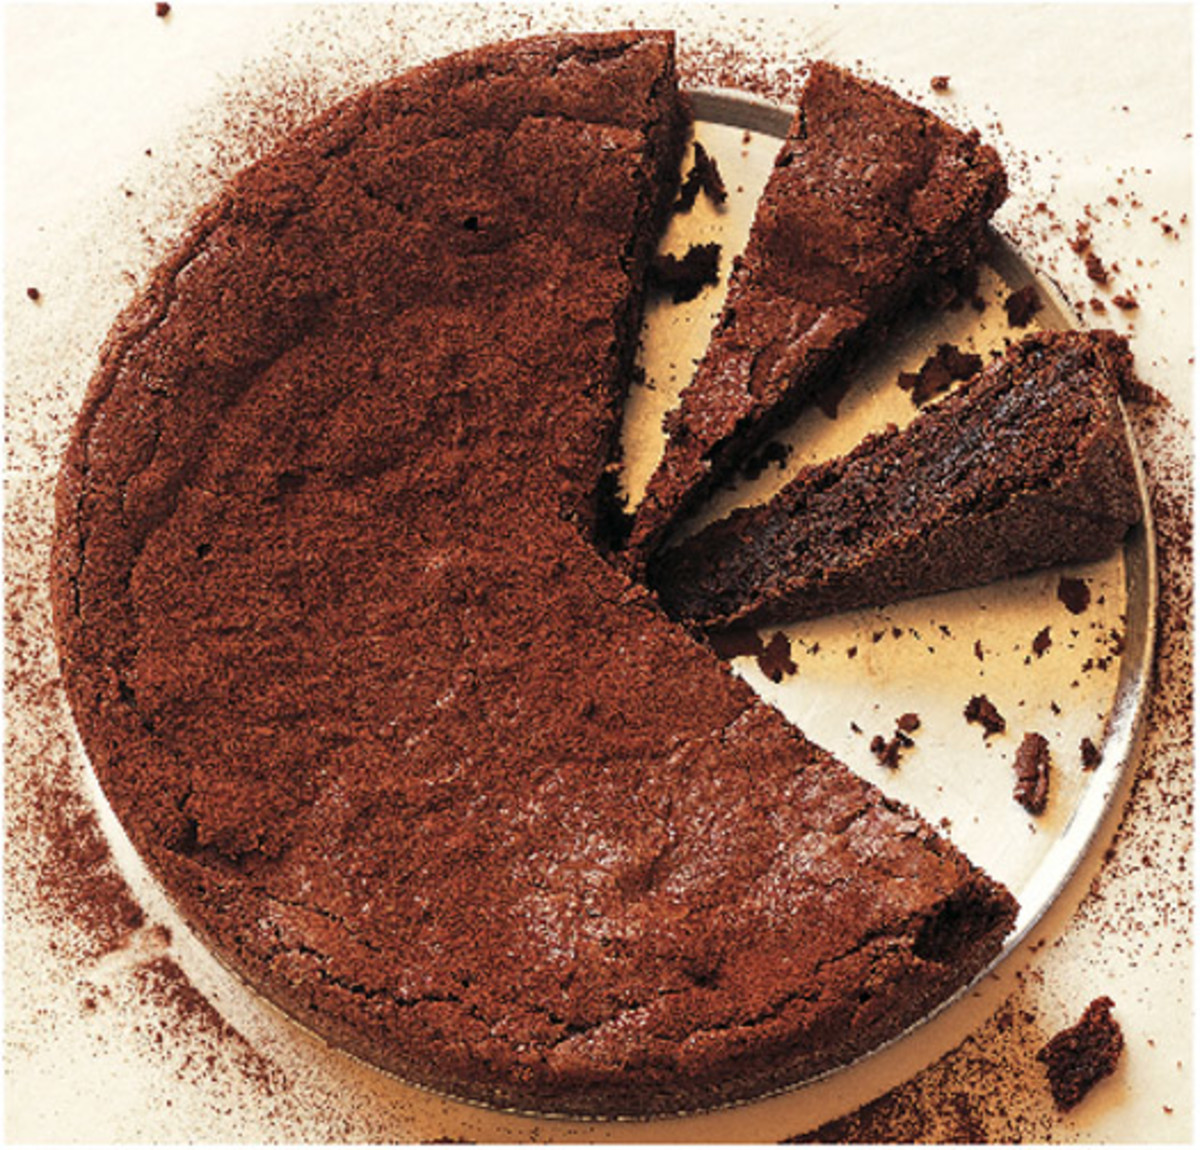 The Easiest and Most Delicious Chocolate Cake: All You Need Is a Cup